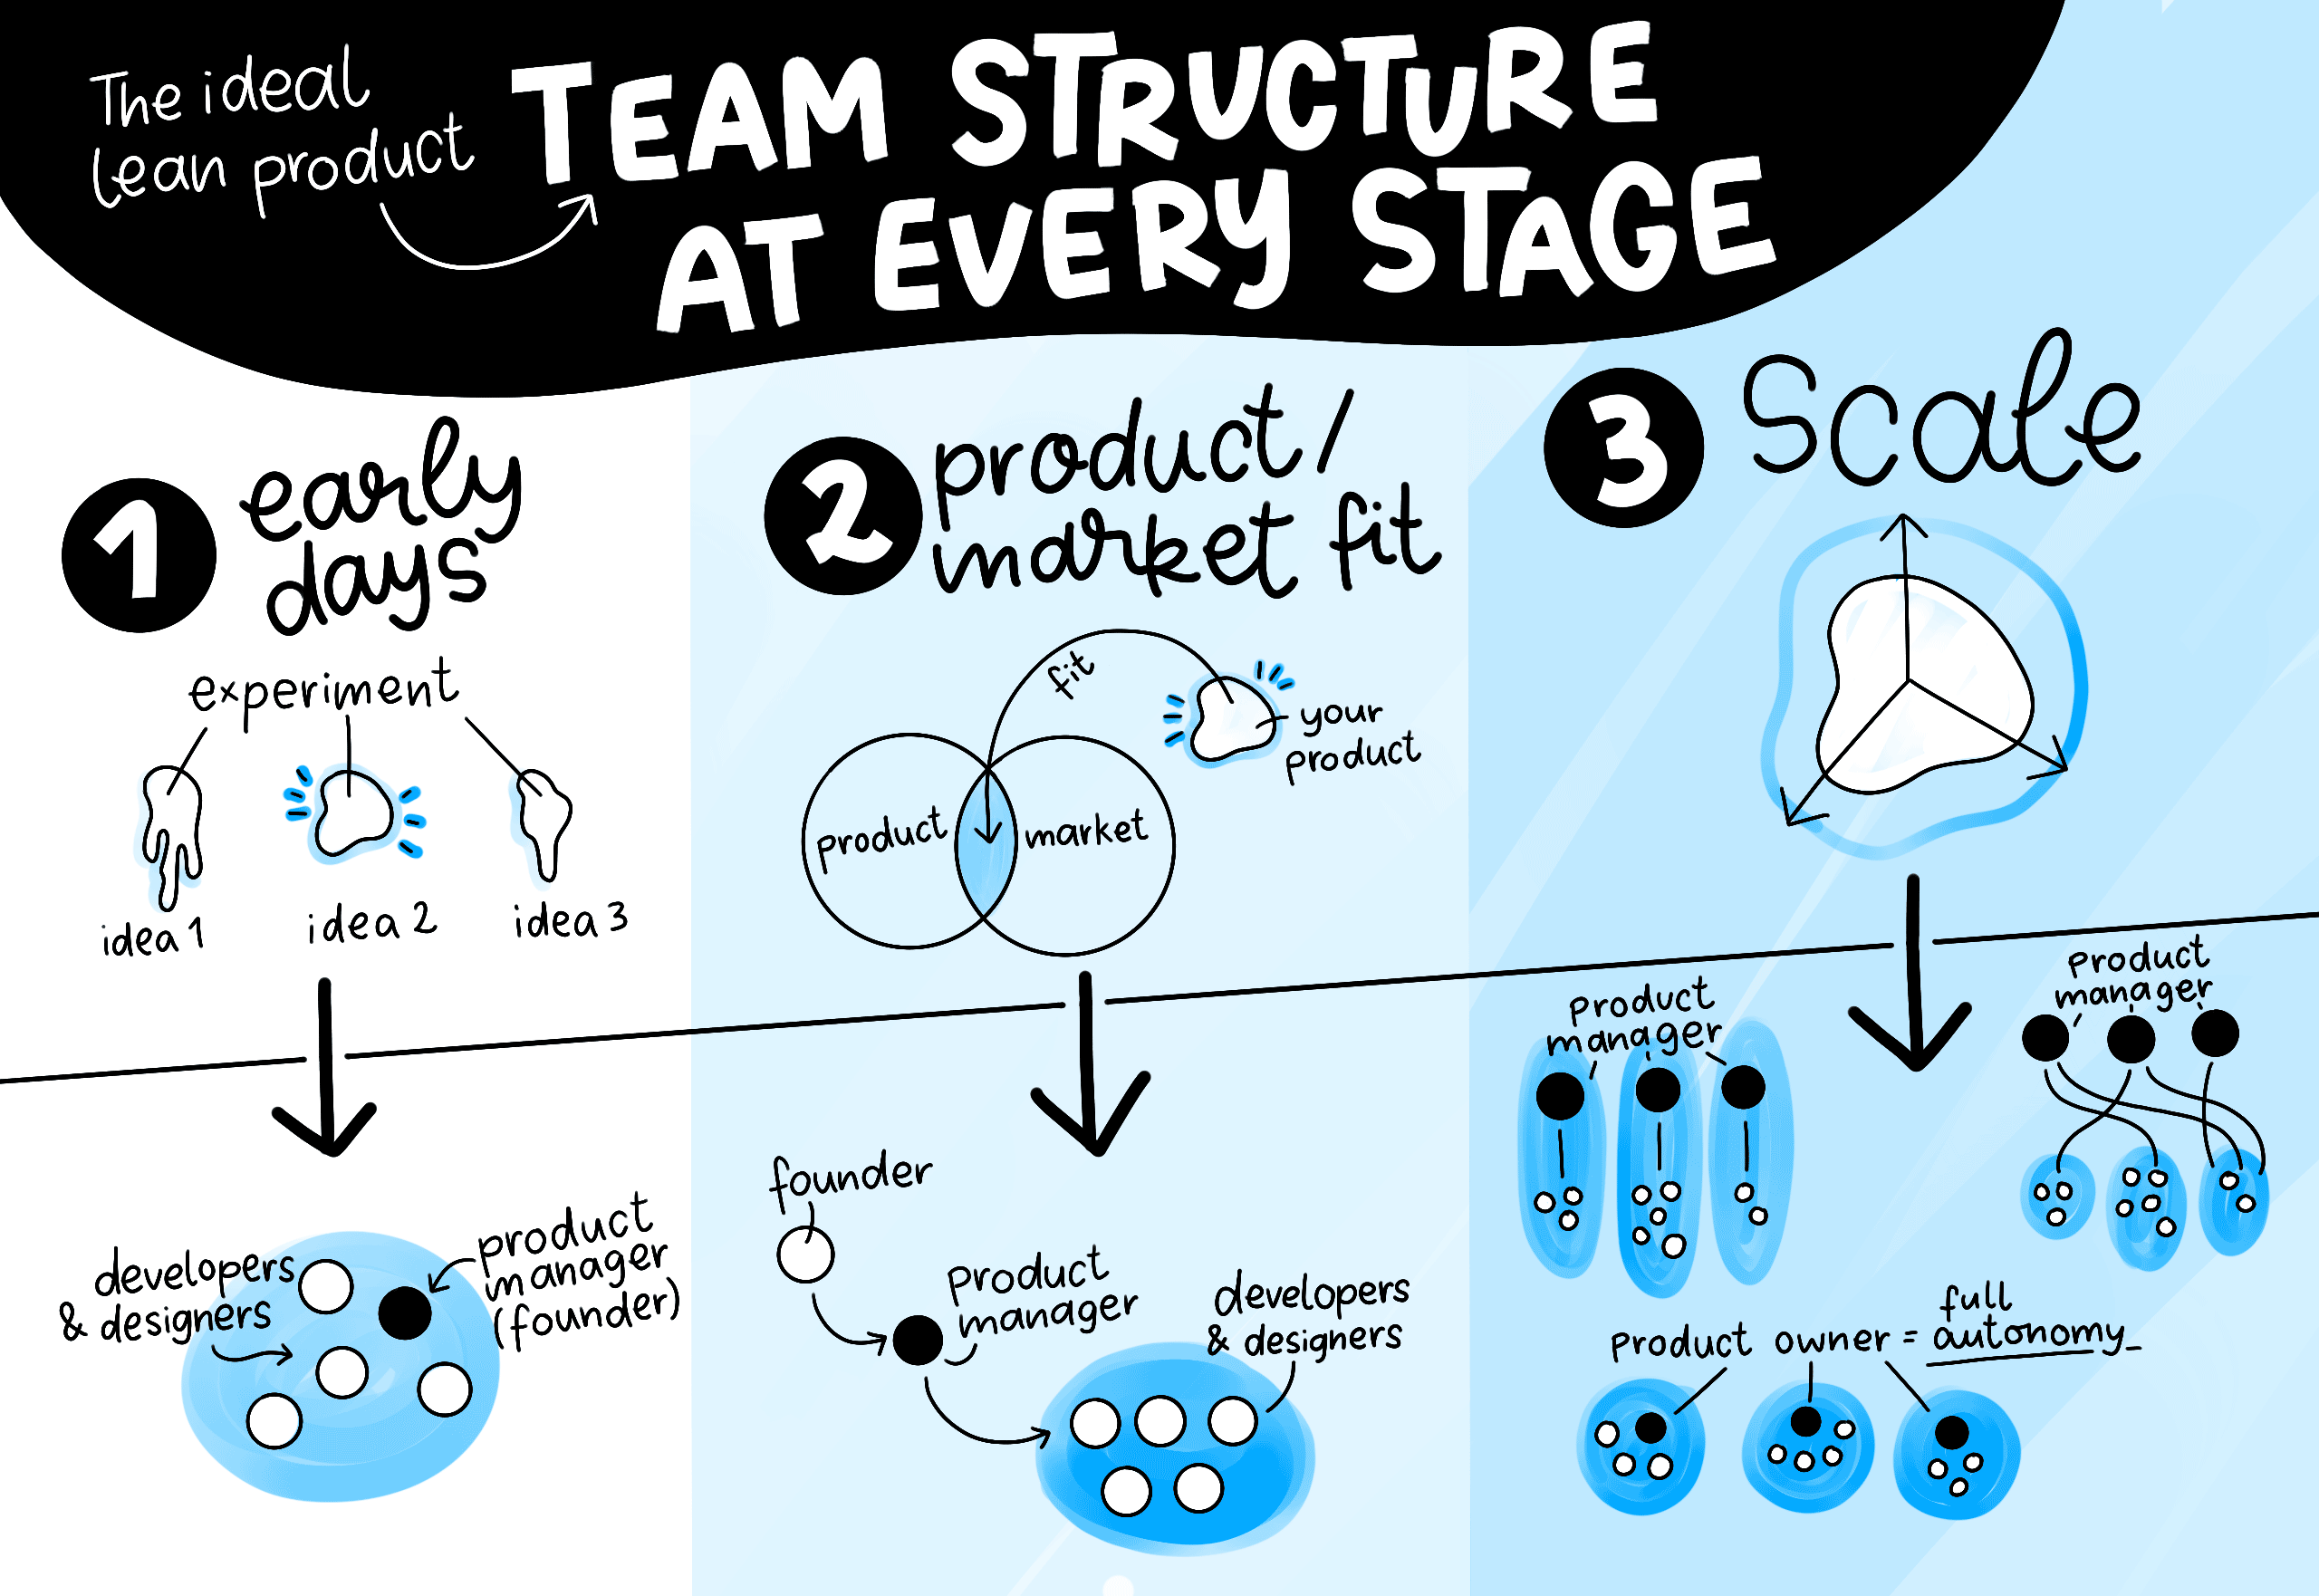 The ideal lean product team structure at every stage